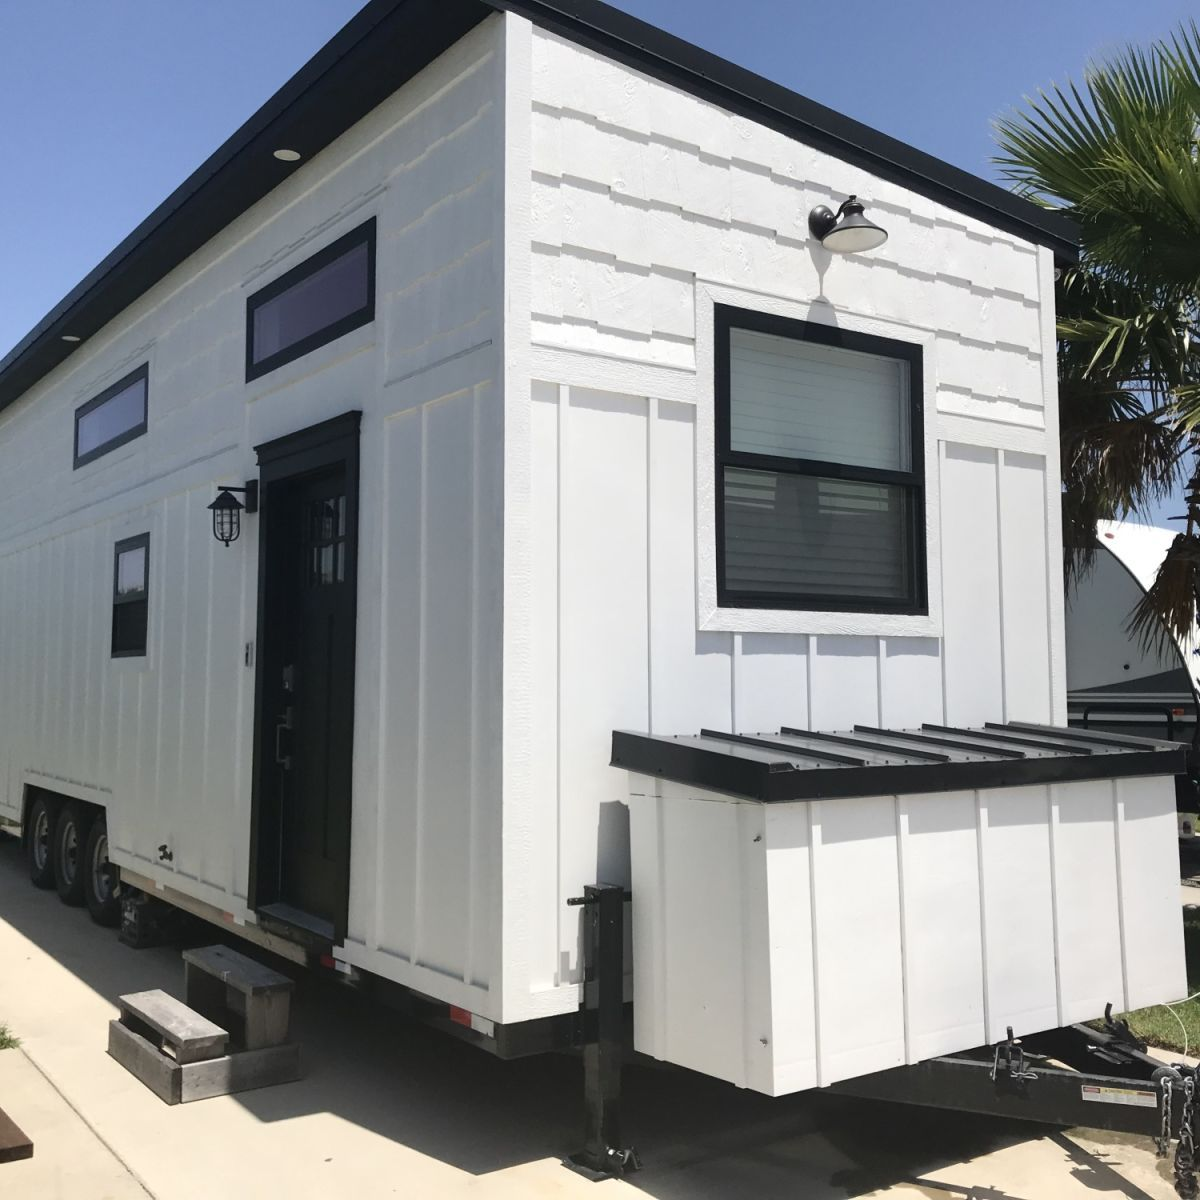 Reduced Beautiful Tiny Home Tiny House For Sale In